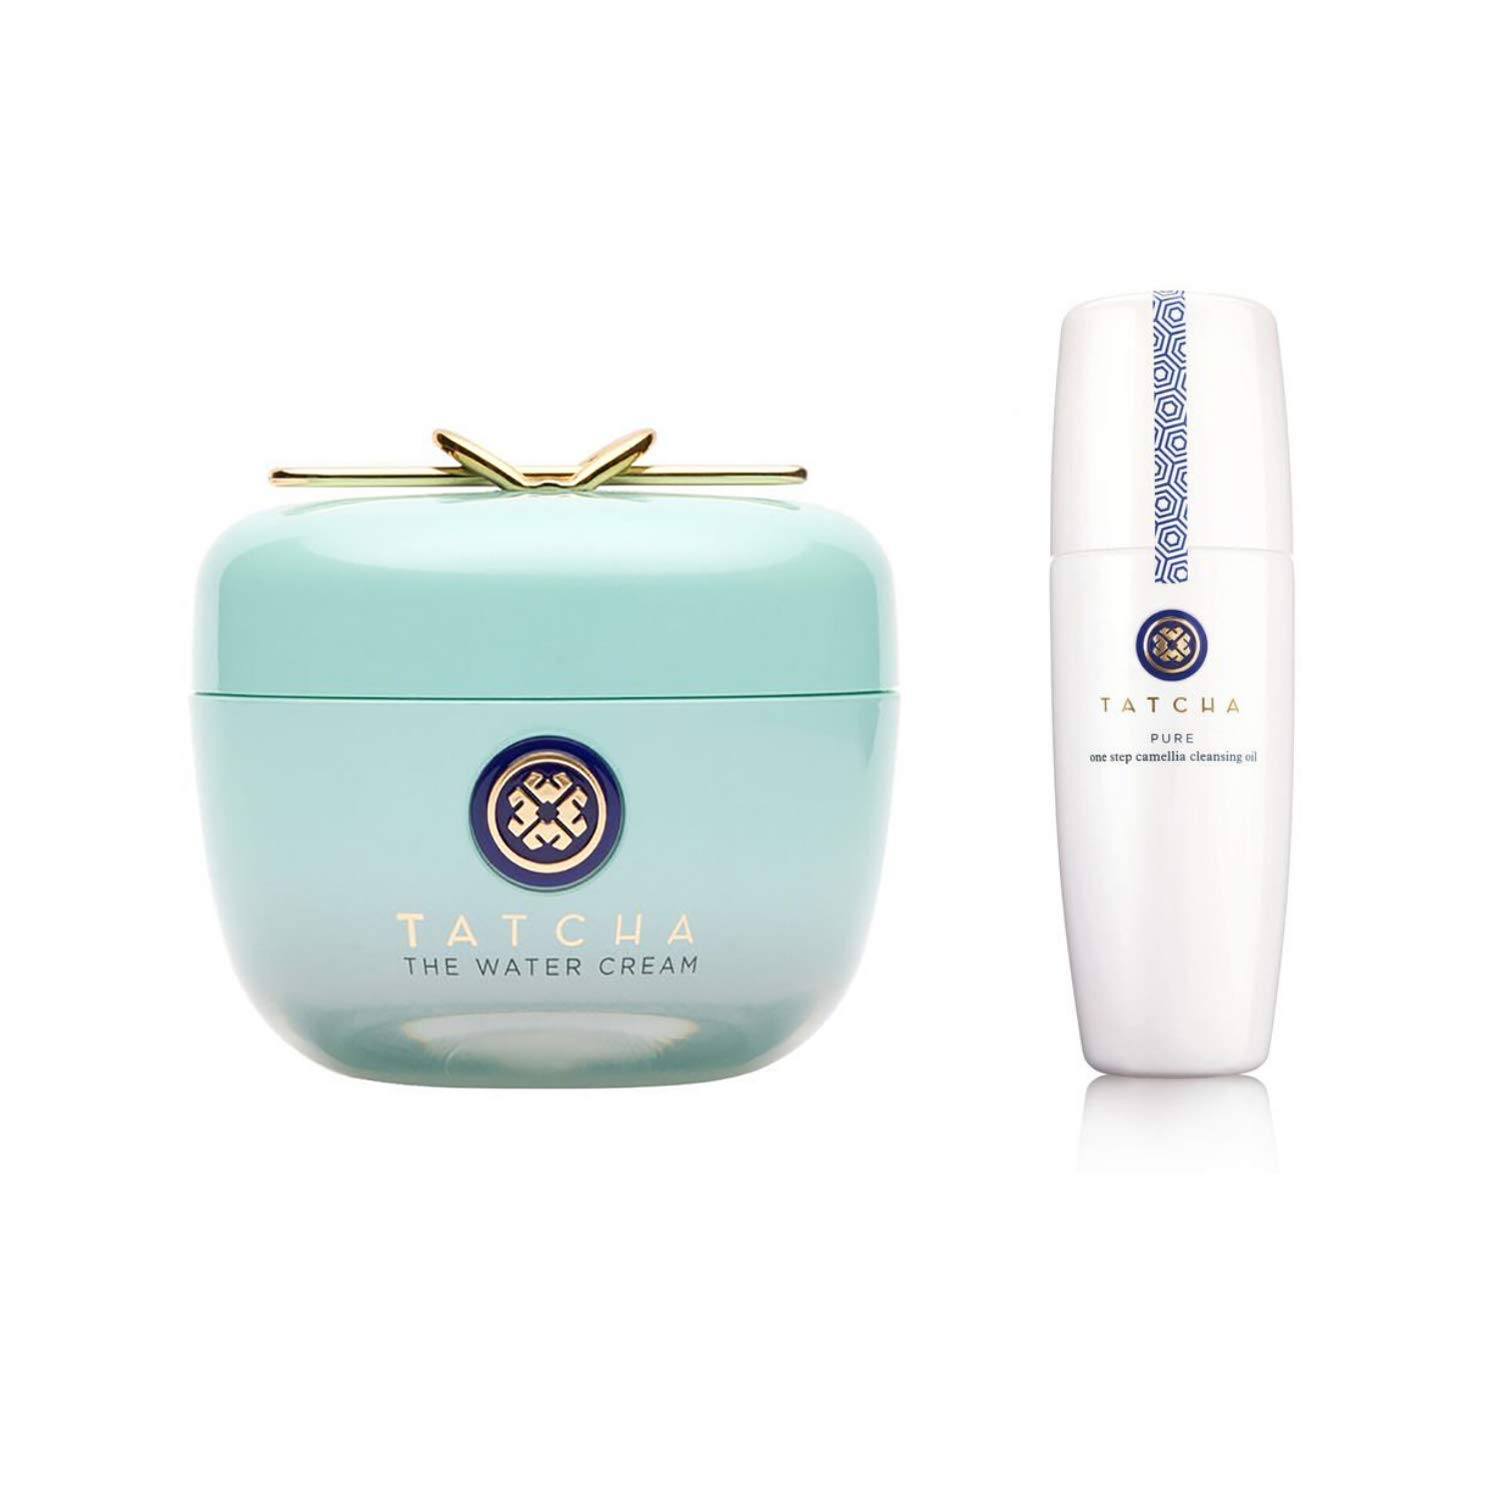 Tatcha Bundle Set - Water Cream & Camelia Cleansing Oil